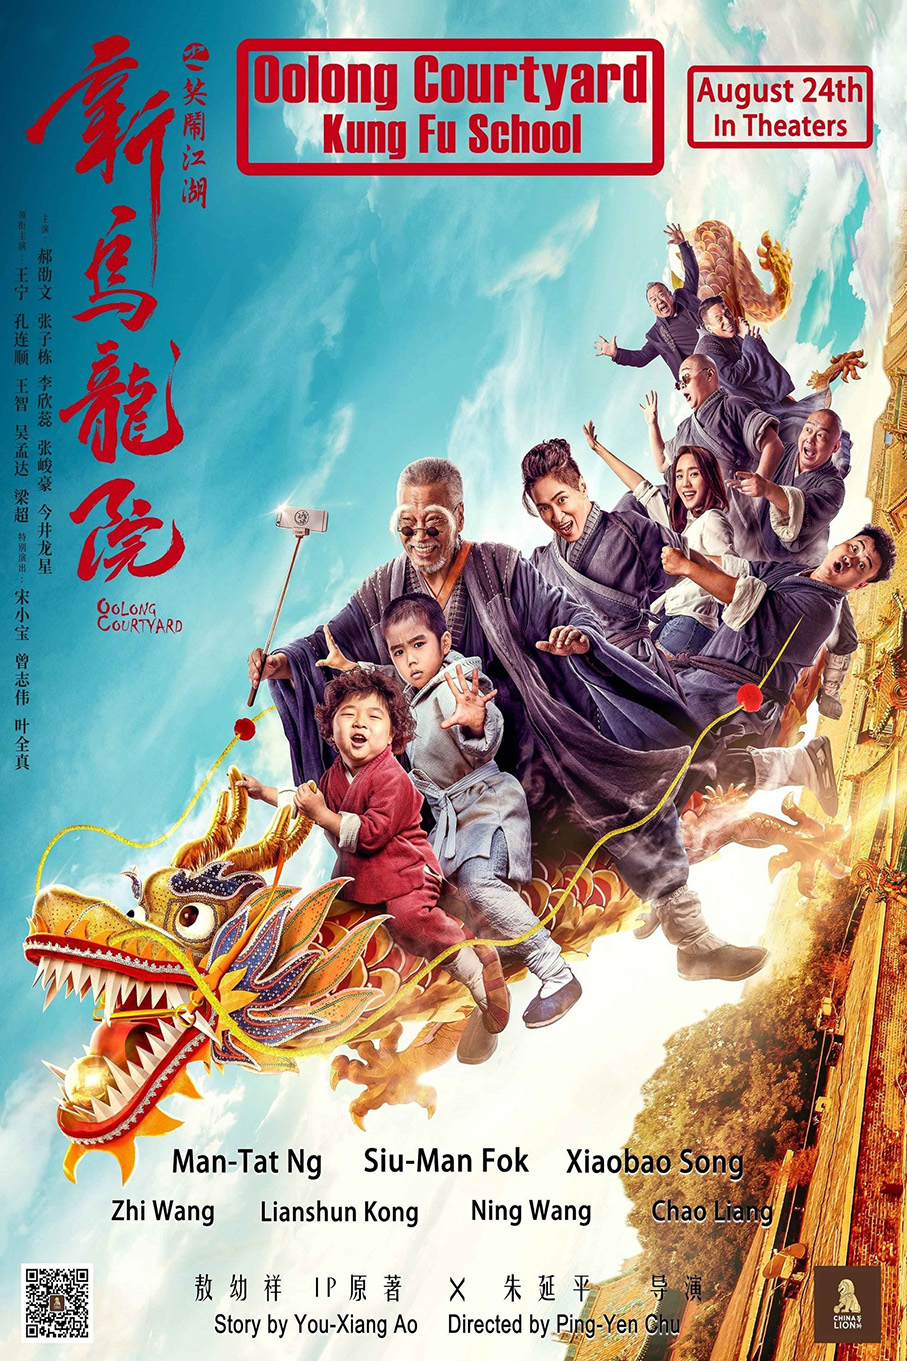 Oolong Courtyard [2018 China Movie] Action, Comedy